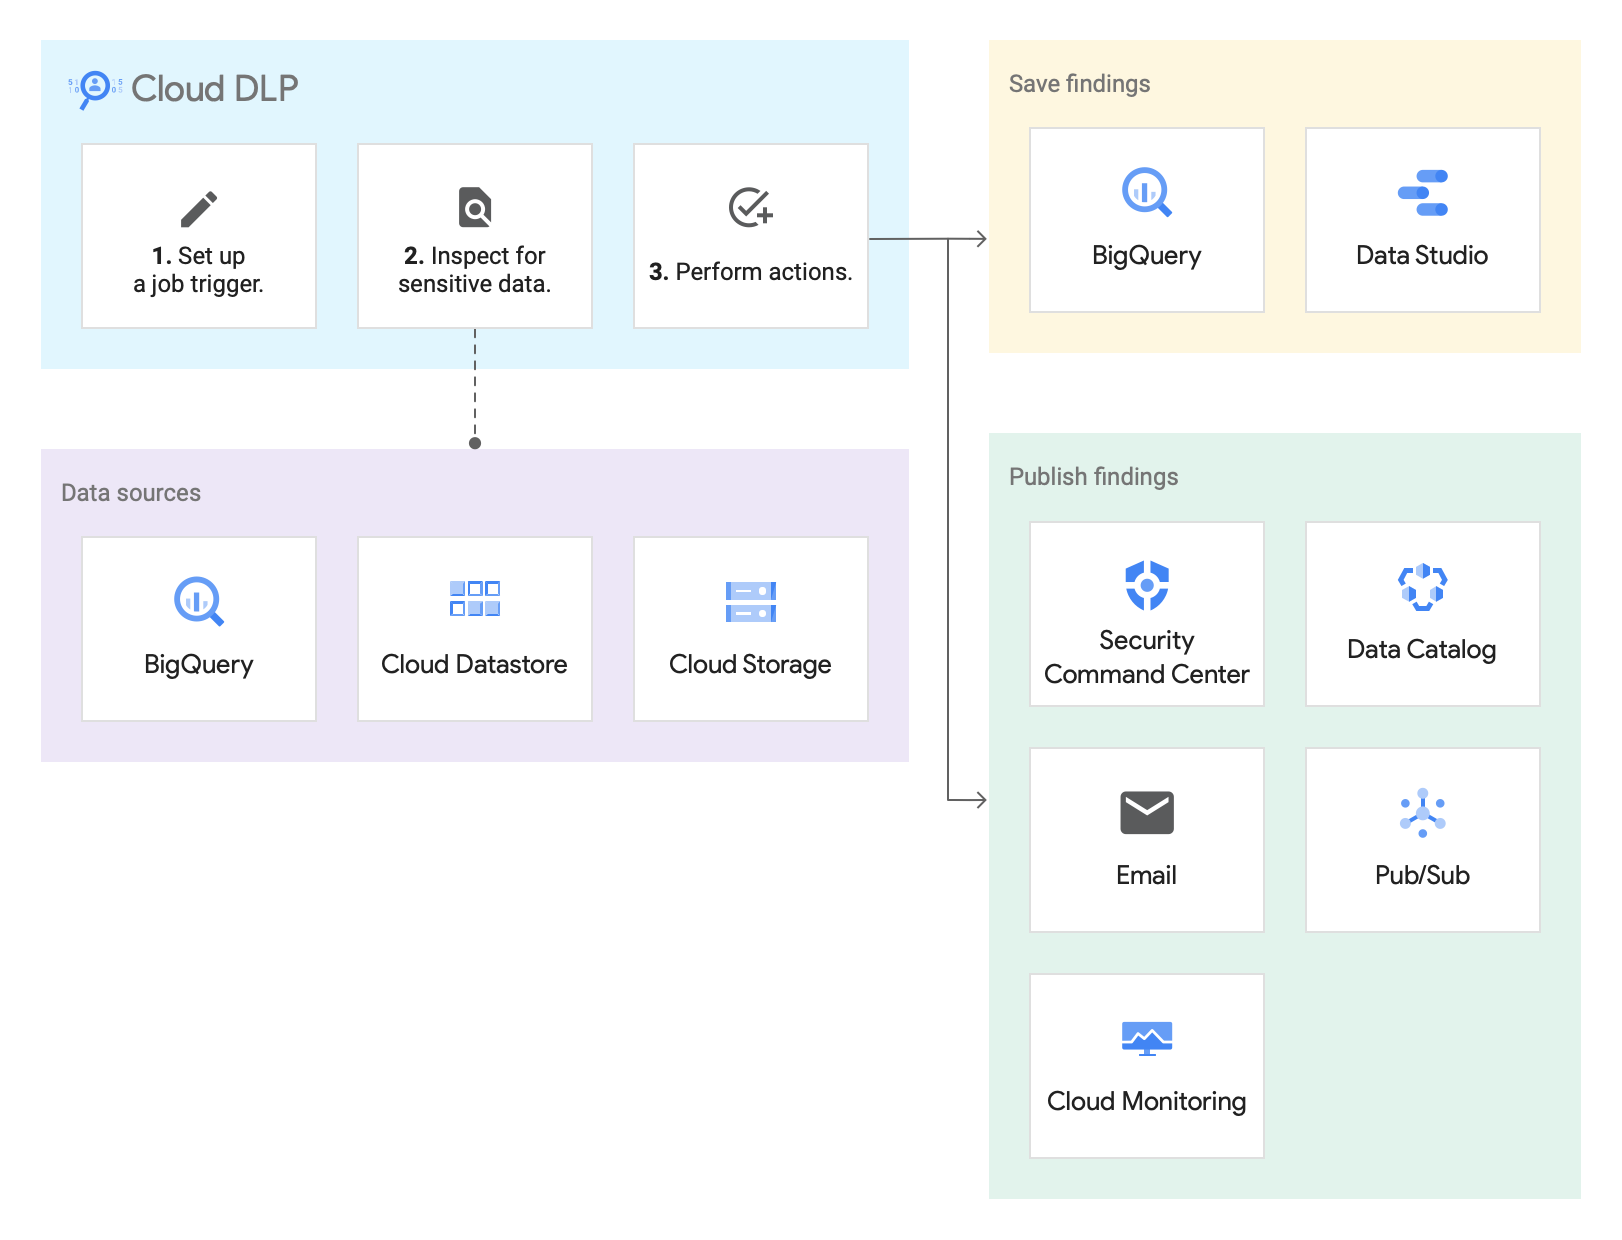 Diagram of storage methods dataflow, showing Cloud DLP inspecting data on a Google Cloud storage repository, and then either saving or publishing findings.